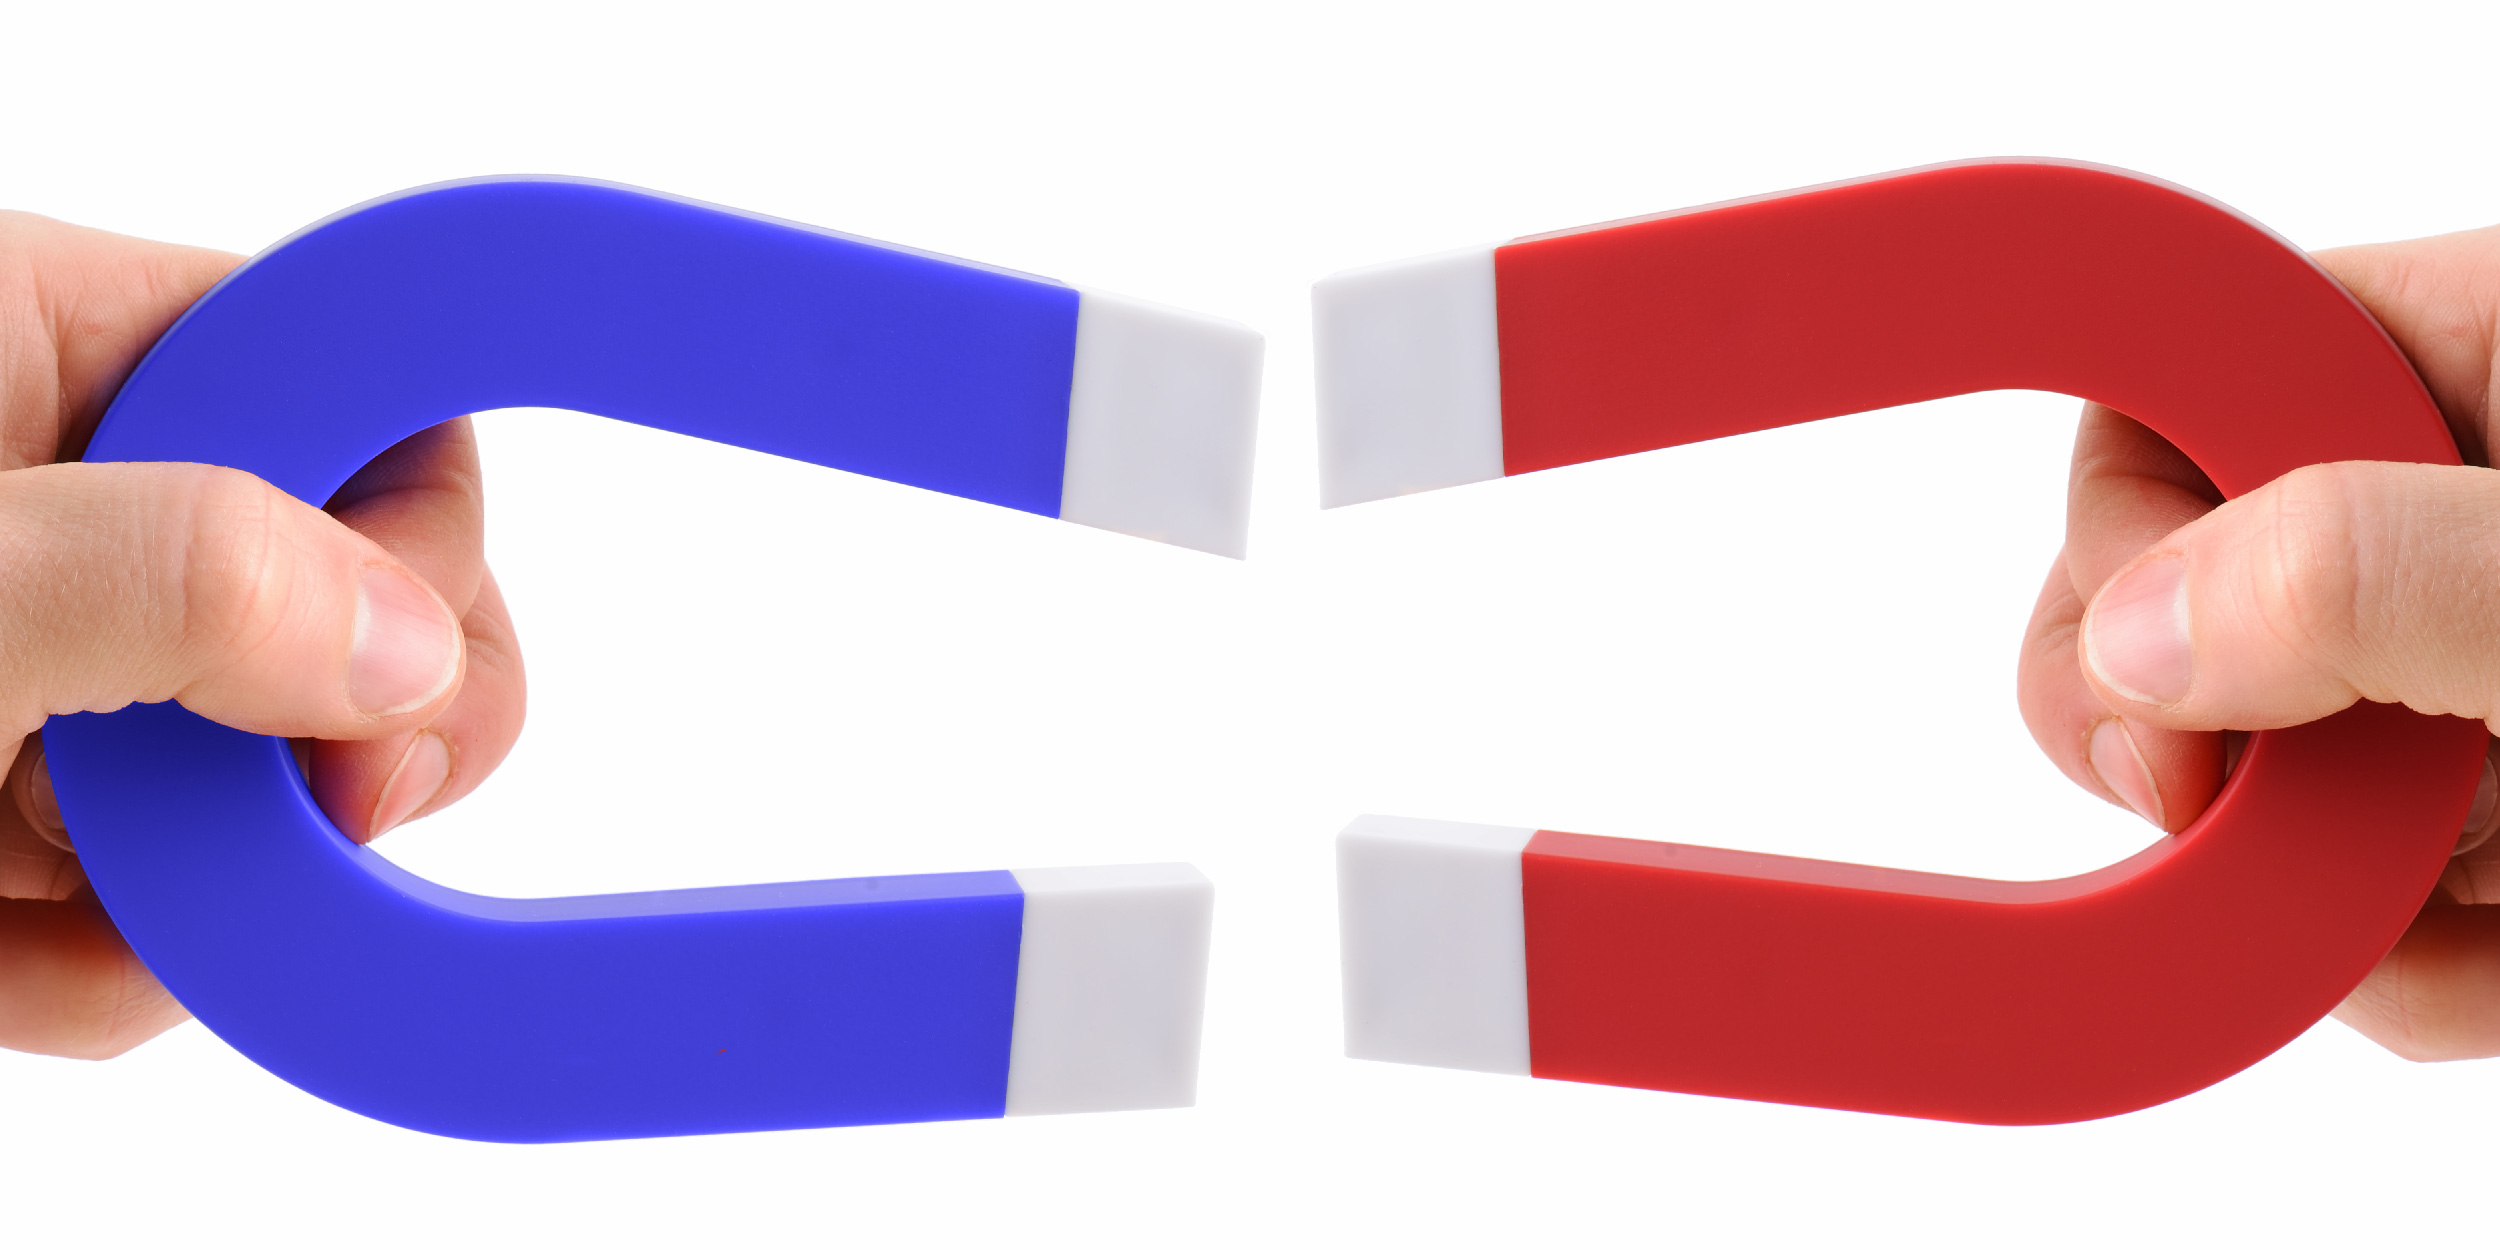 Two magnets demonstrate how opposites attract